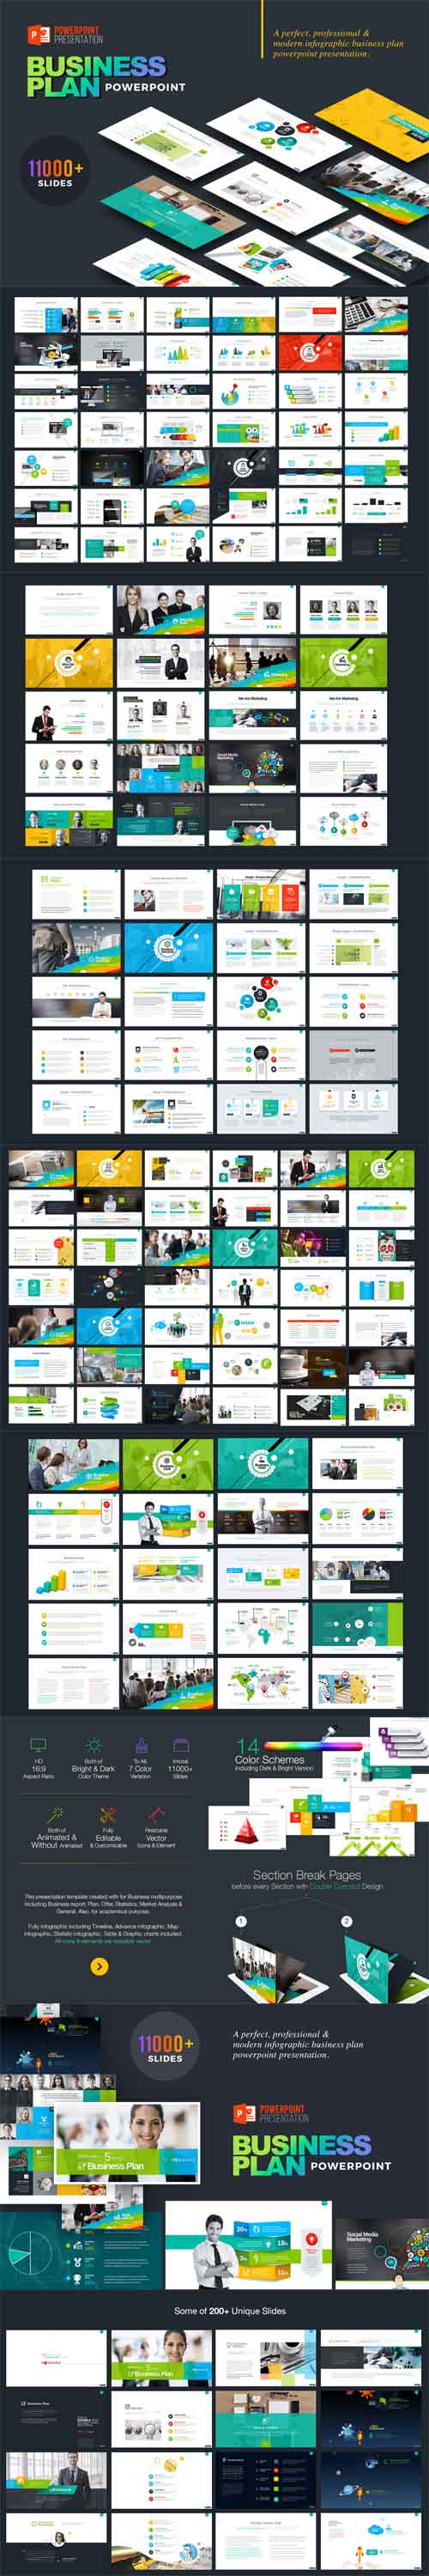 Business Plan Powerpoint